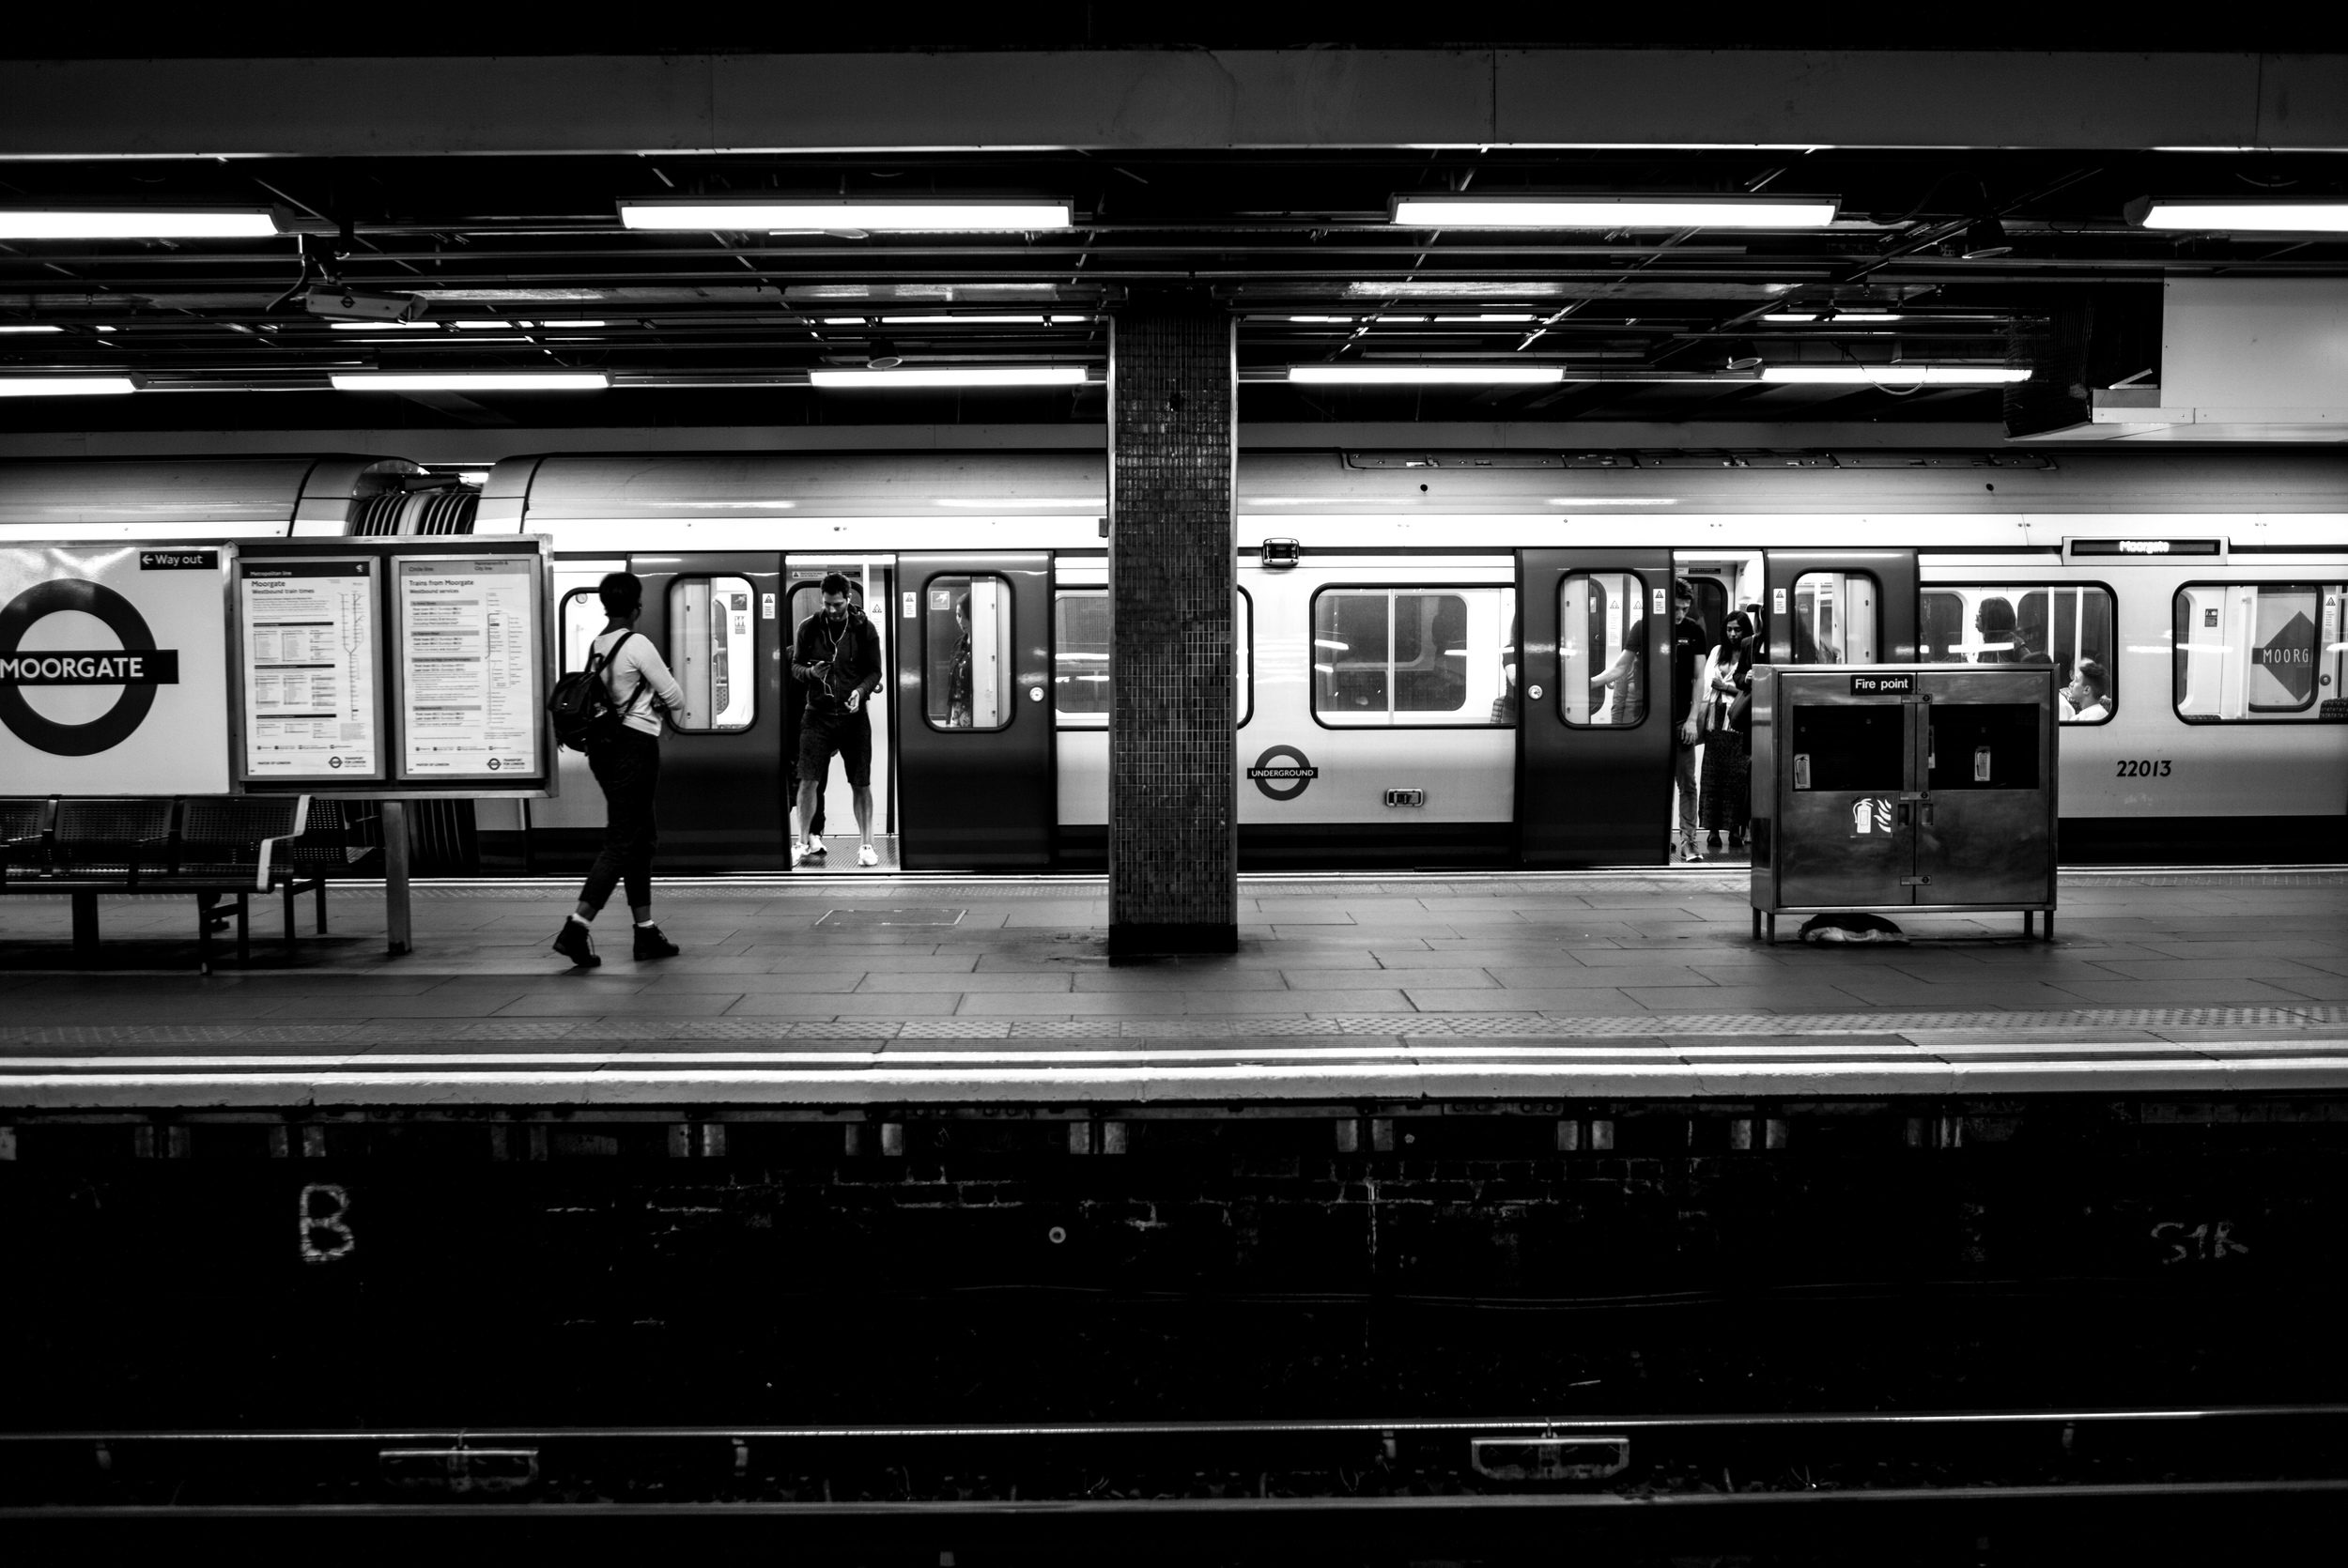 One of the first images I took with my Leica M Monochrom was using the 35mm Summarit in this underground station in London